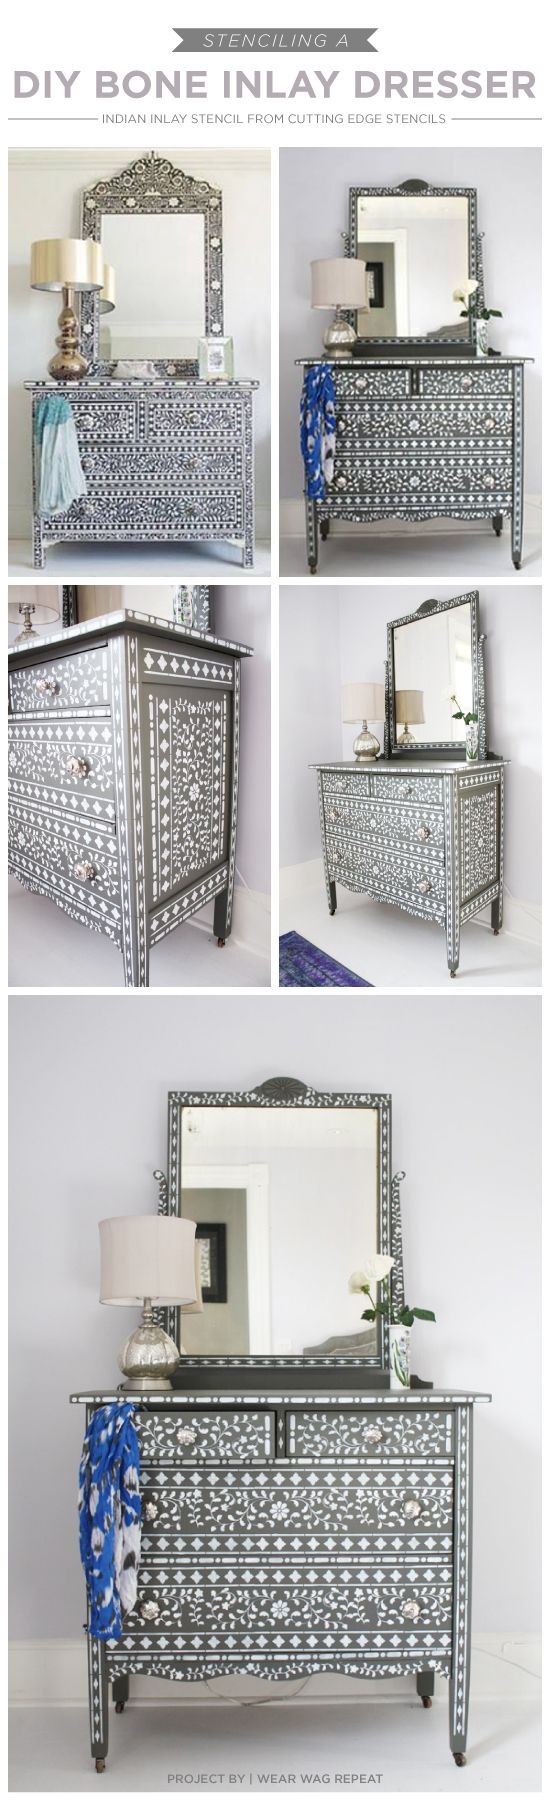 25 best ideas about stencil dresser on pinterest the indians indian inspired bedroom and. Black Bedroom Furniture Sets. Home Design Ideas